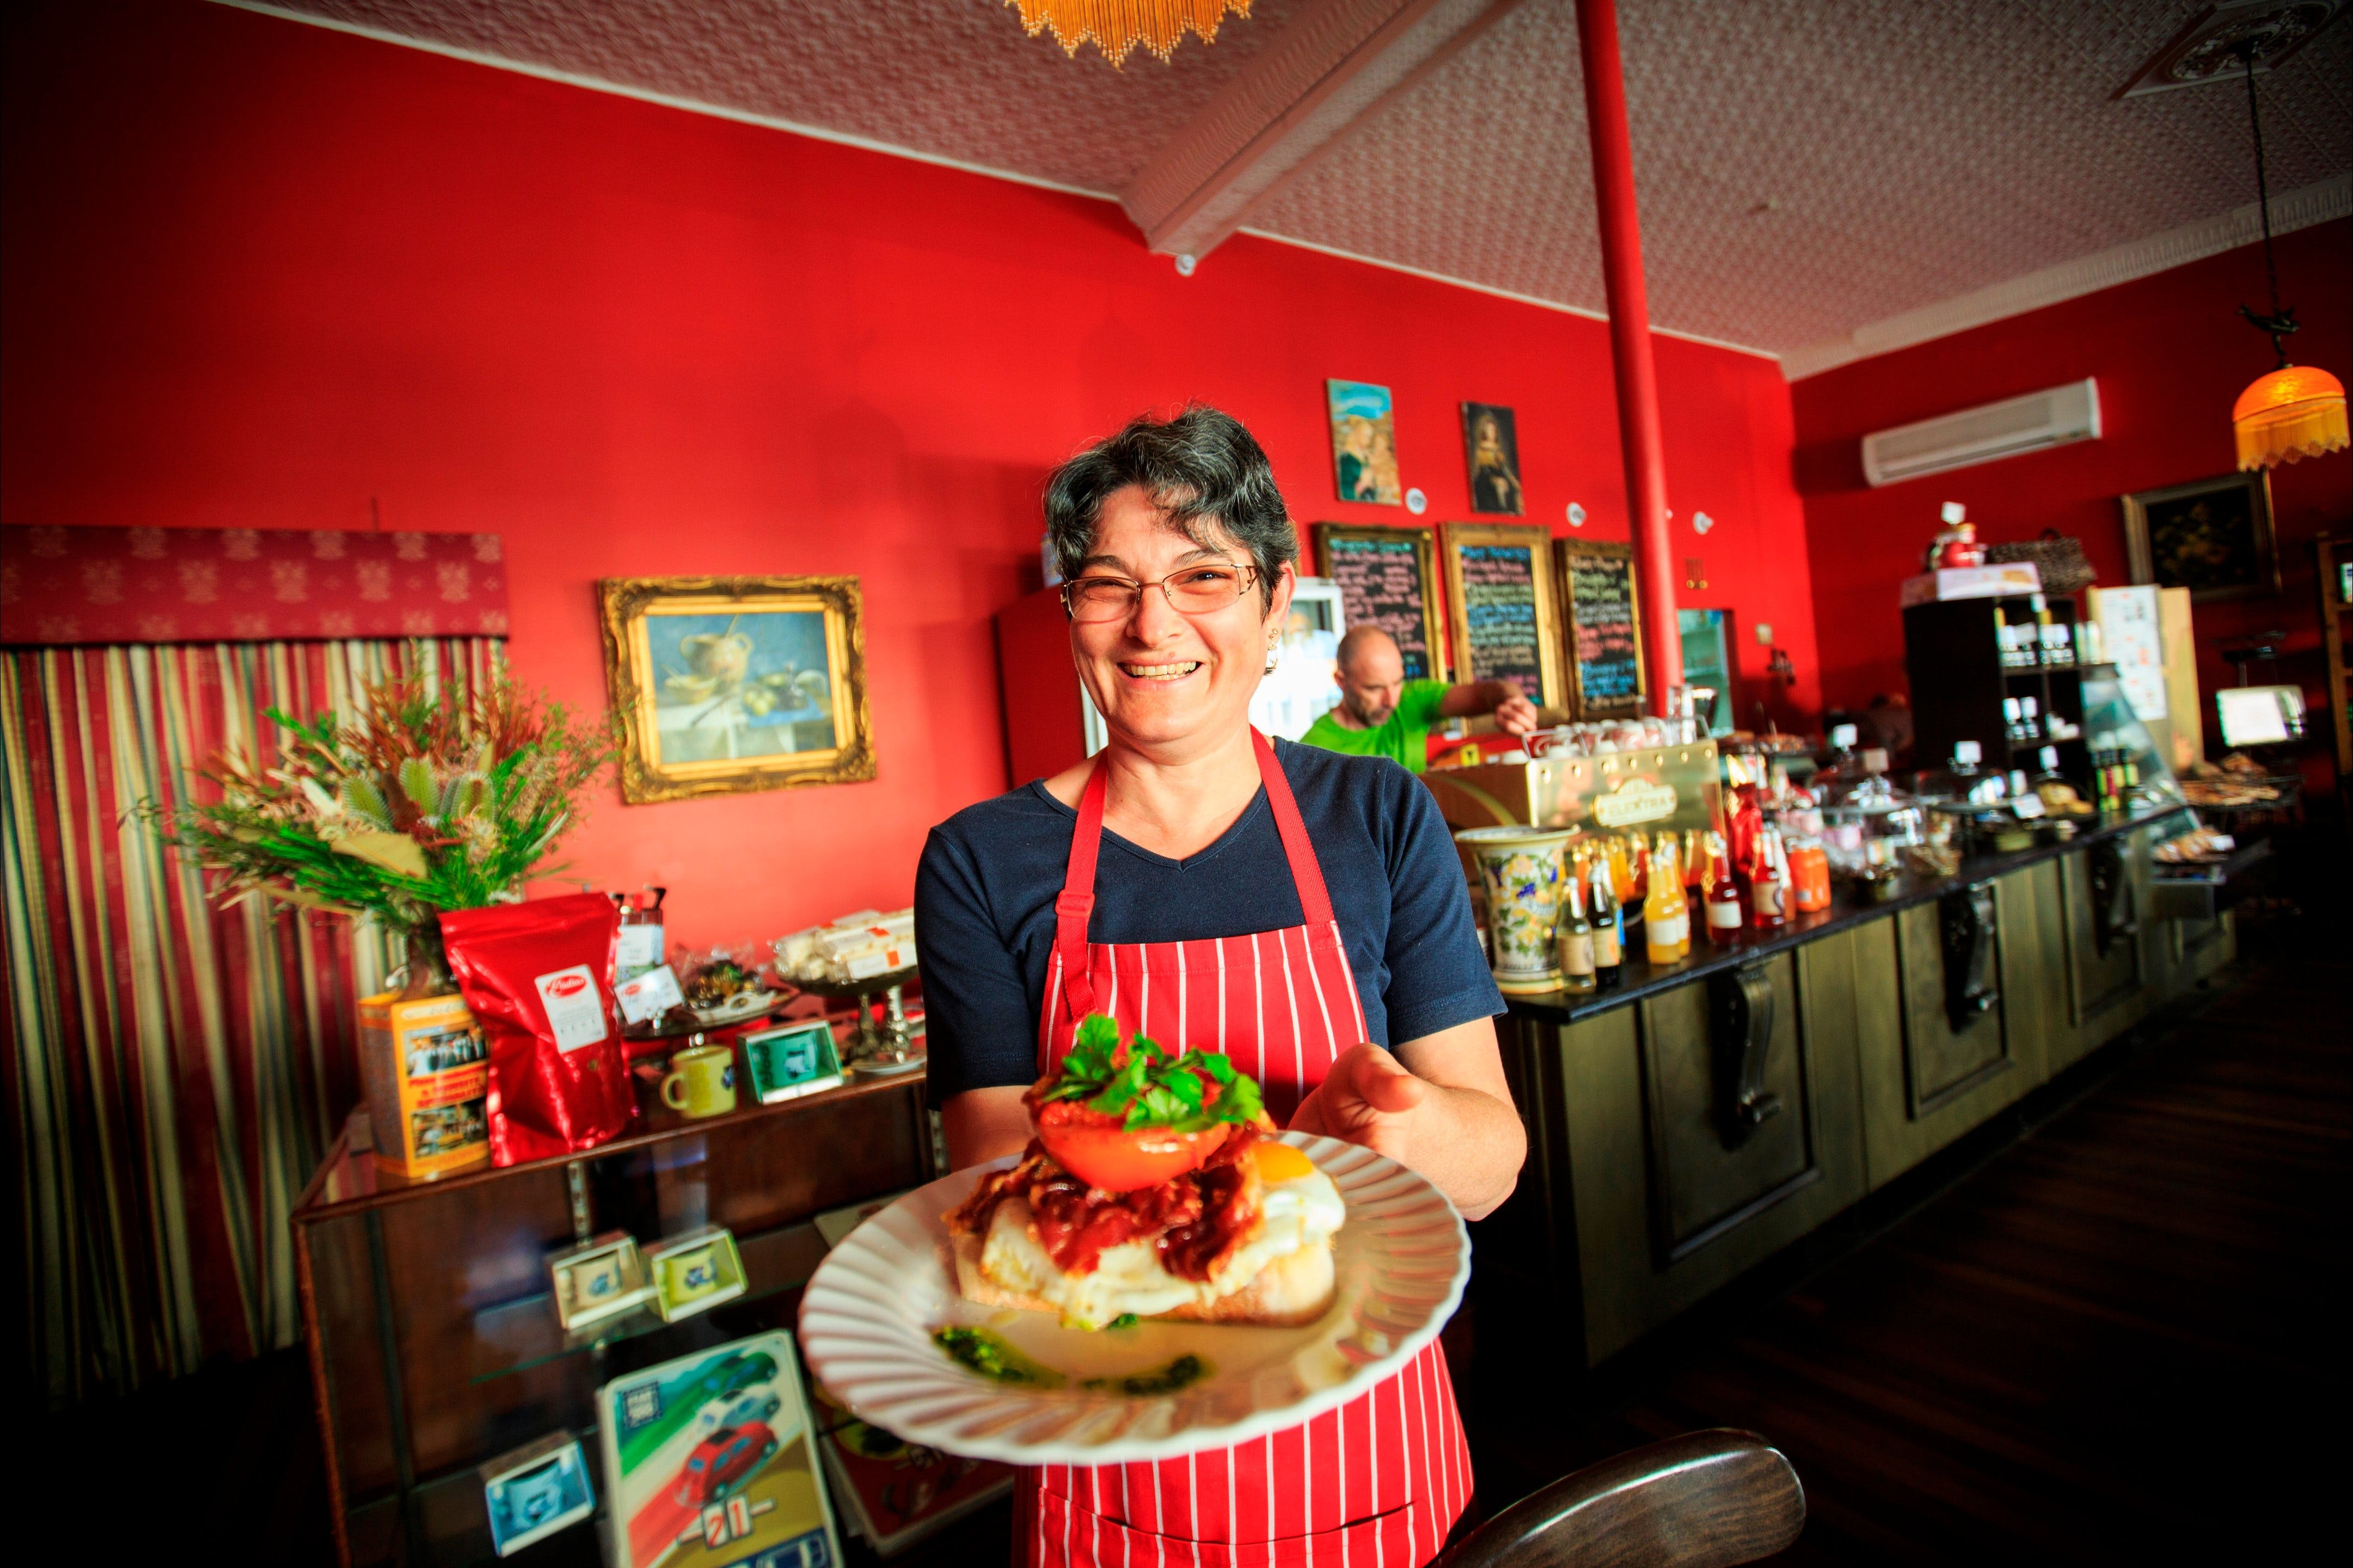 Gympie Region Food Trail - Tourism Gold Coast